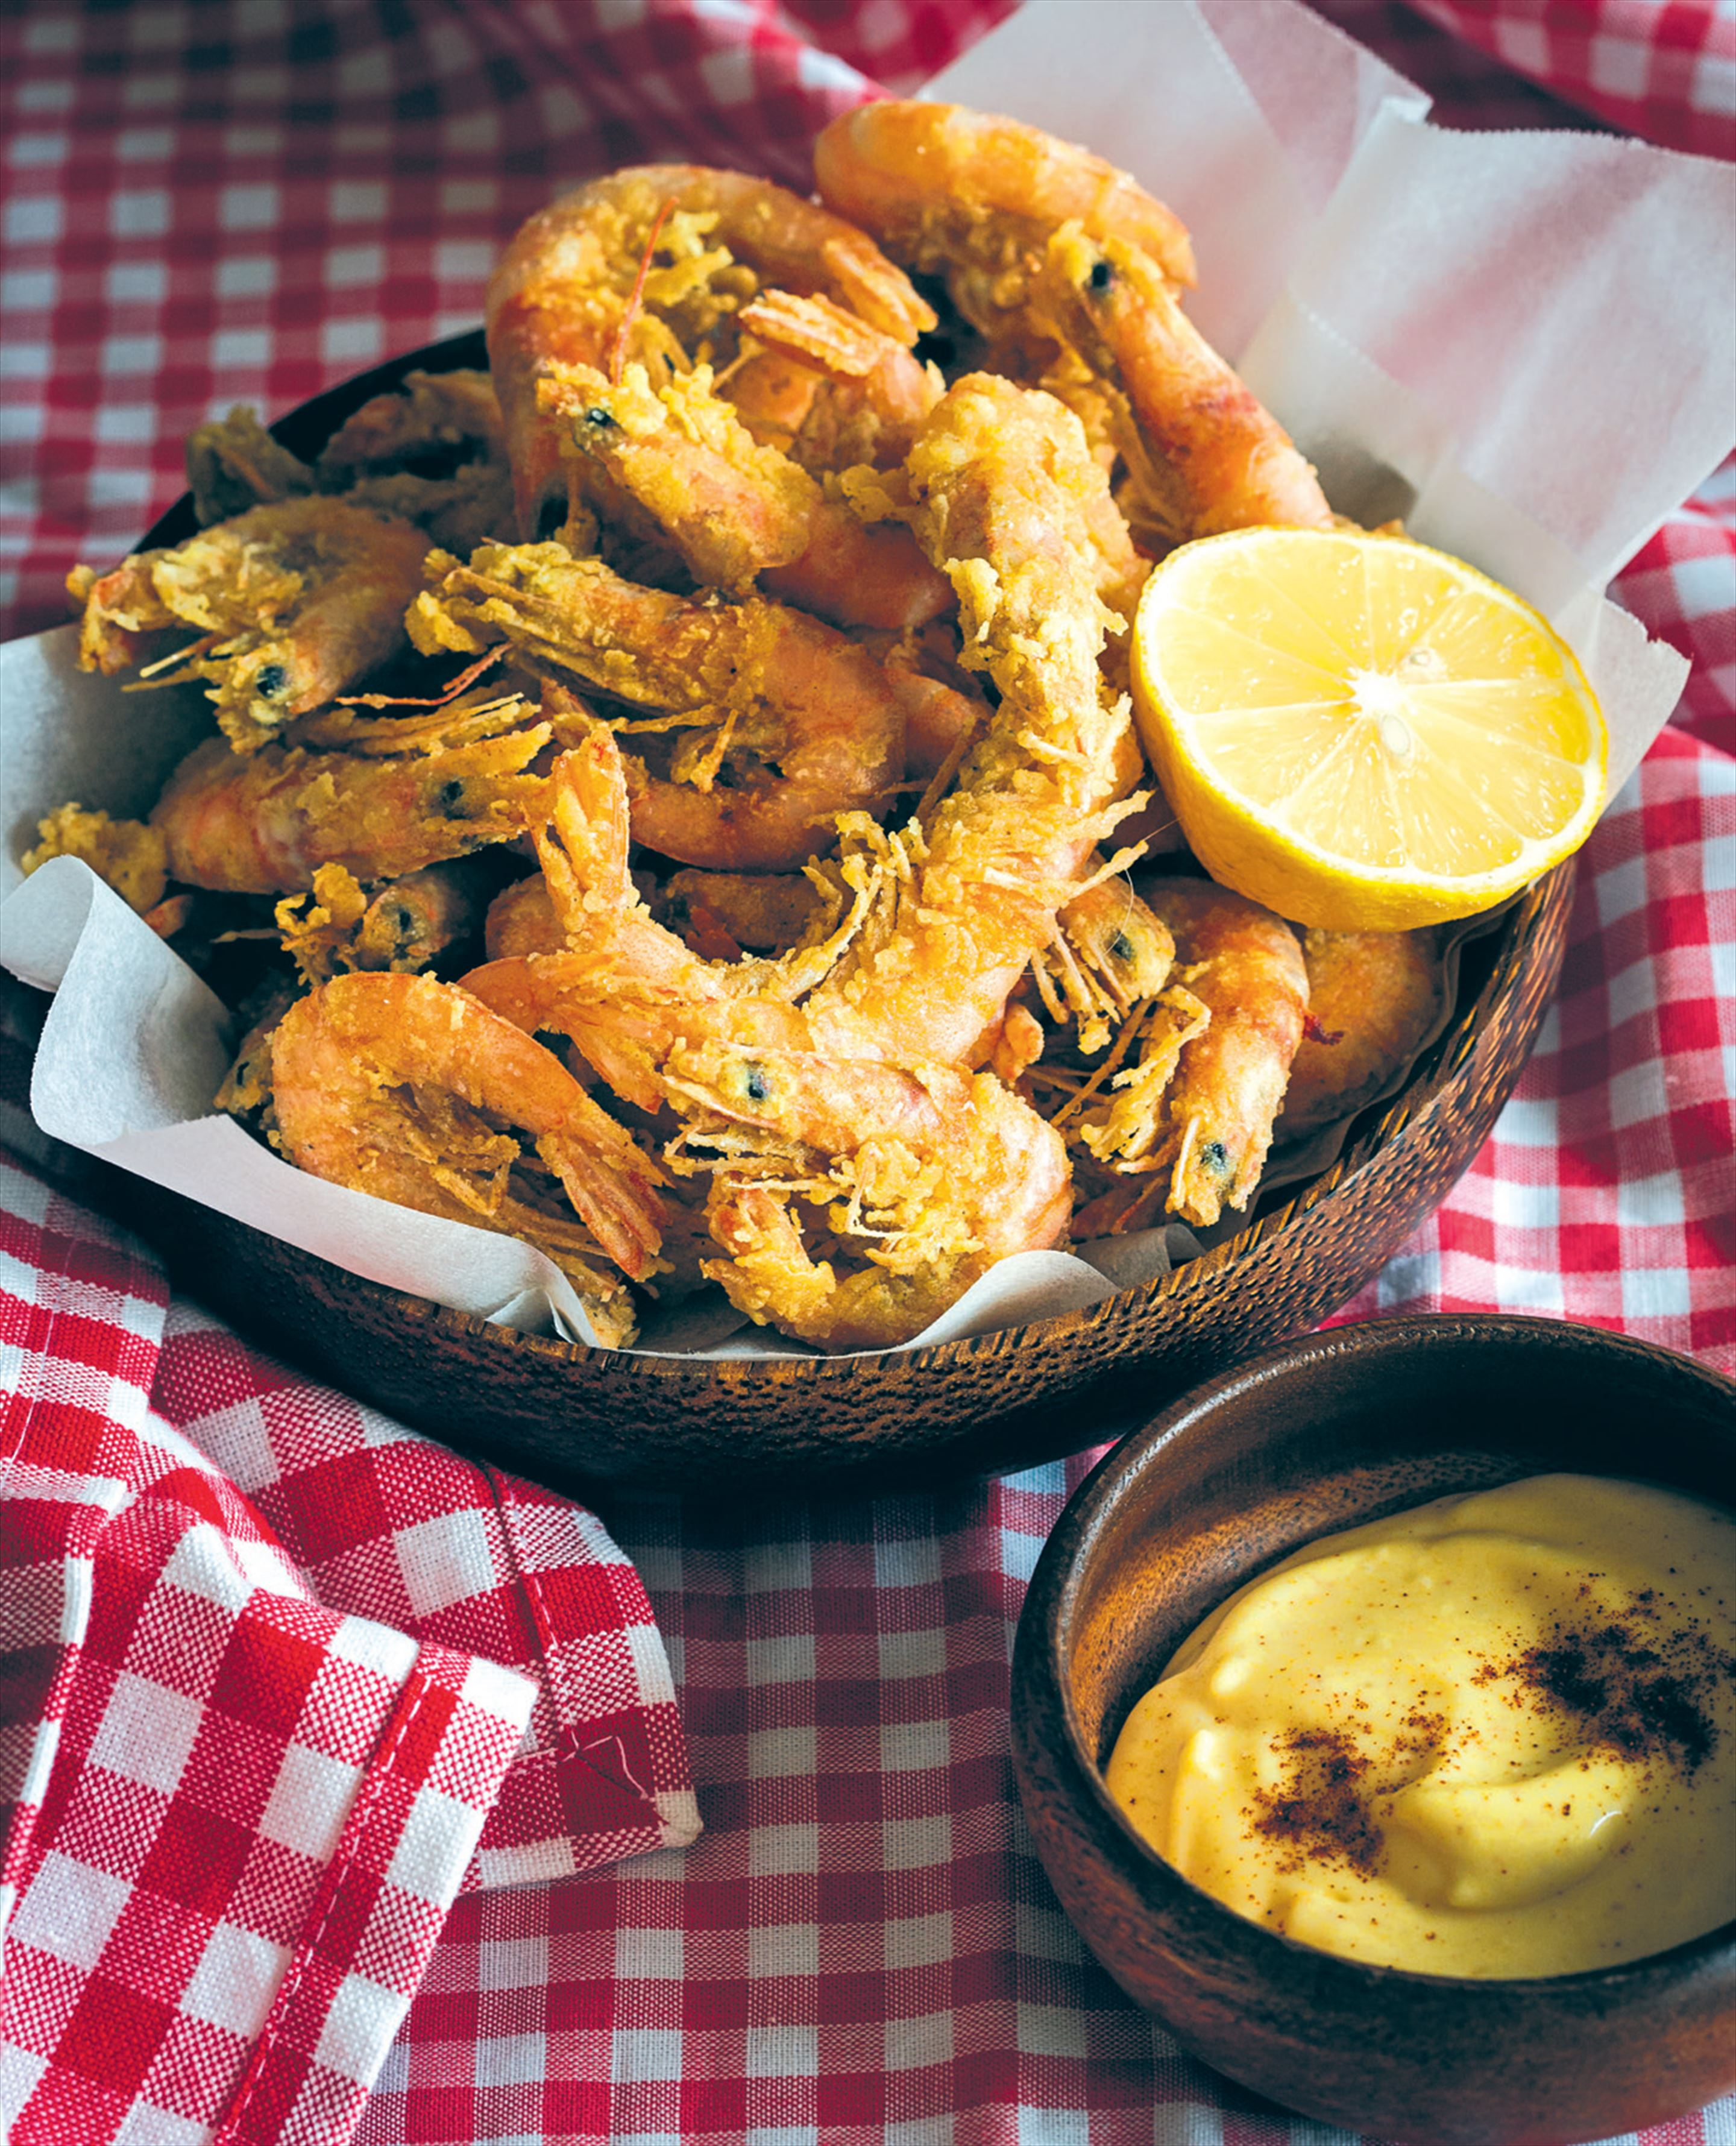 Fried curry school prawns with spicy aioli